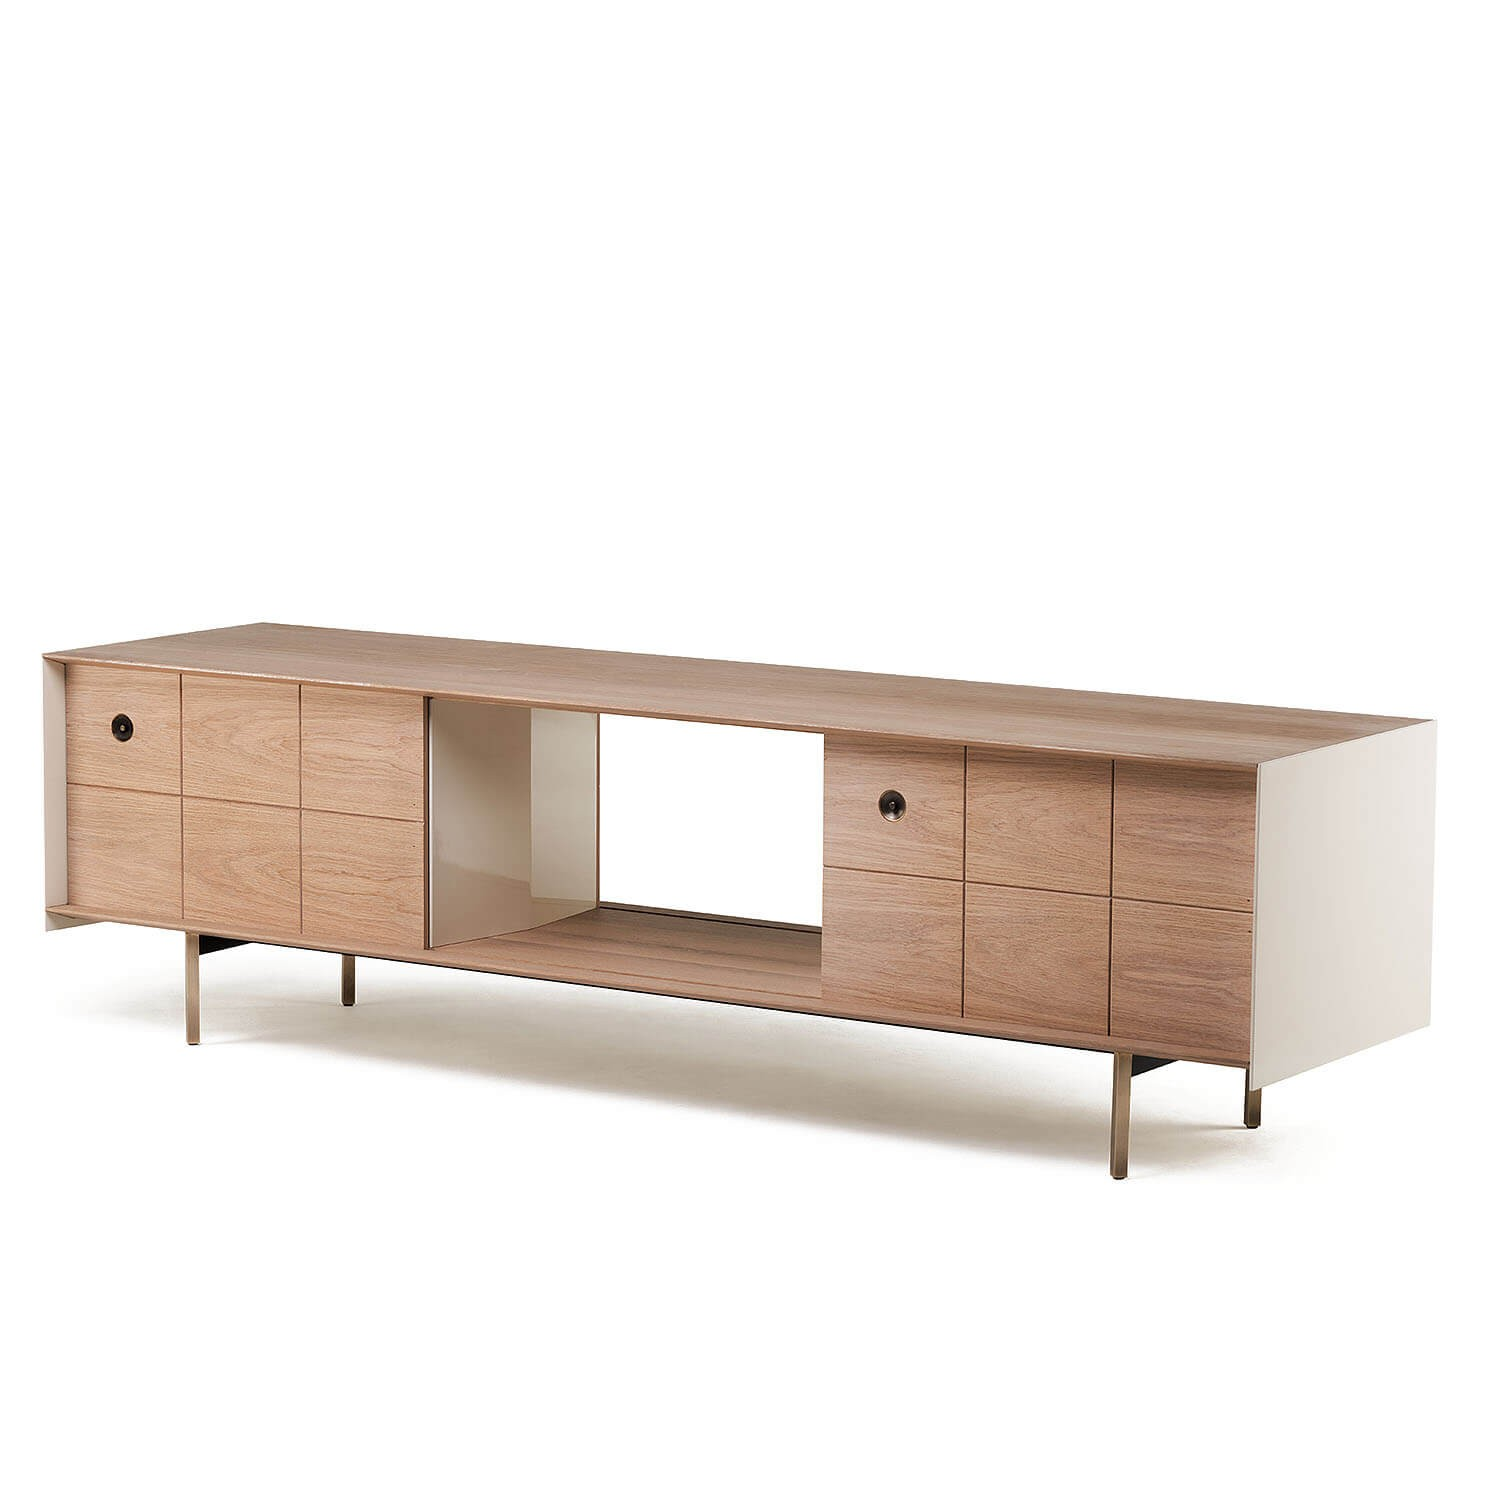 Delicieux Exceptional Low Cabinet #17   MITCH LOW CABINET